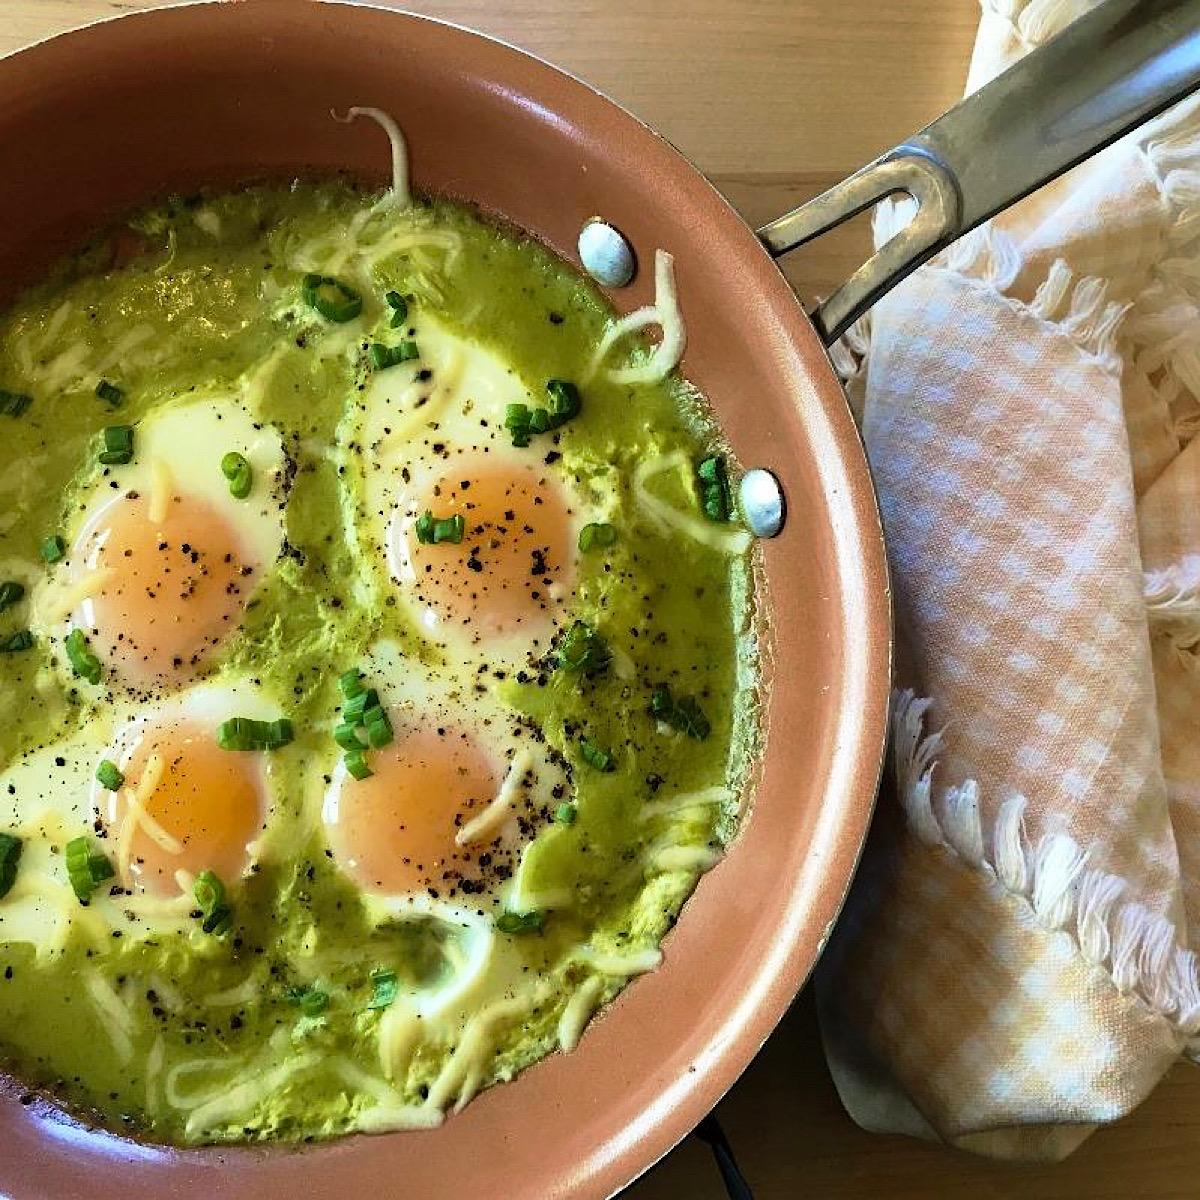 Low carb Mexican baked eggs in chile verde sauce, still in skillet